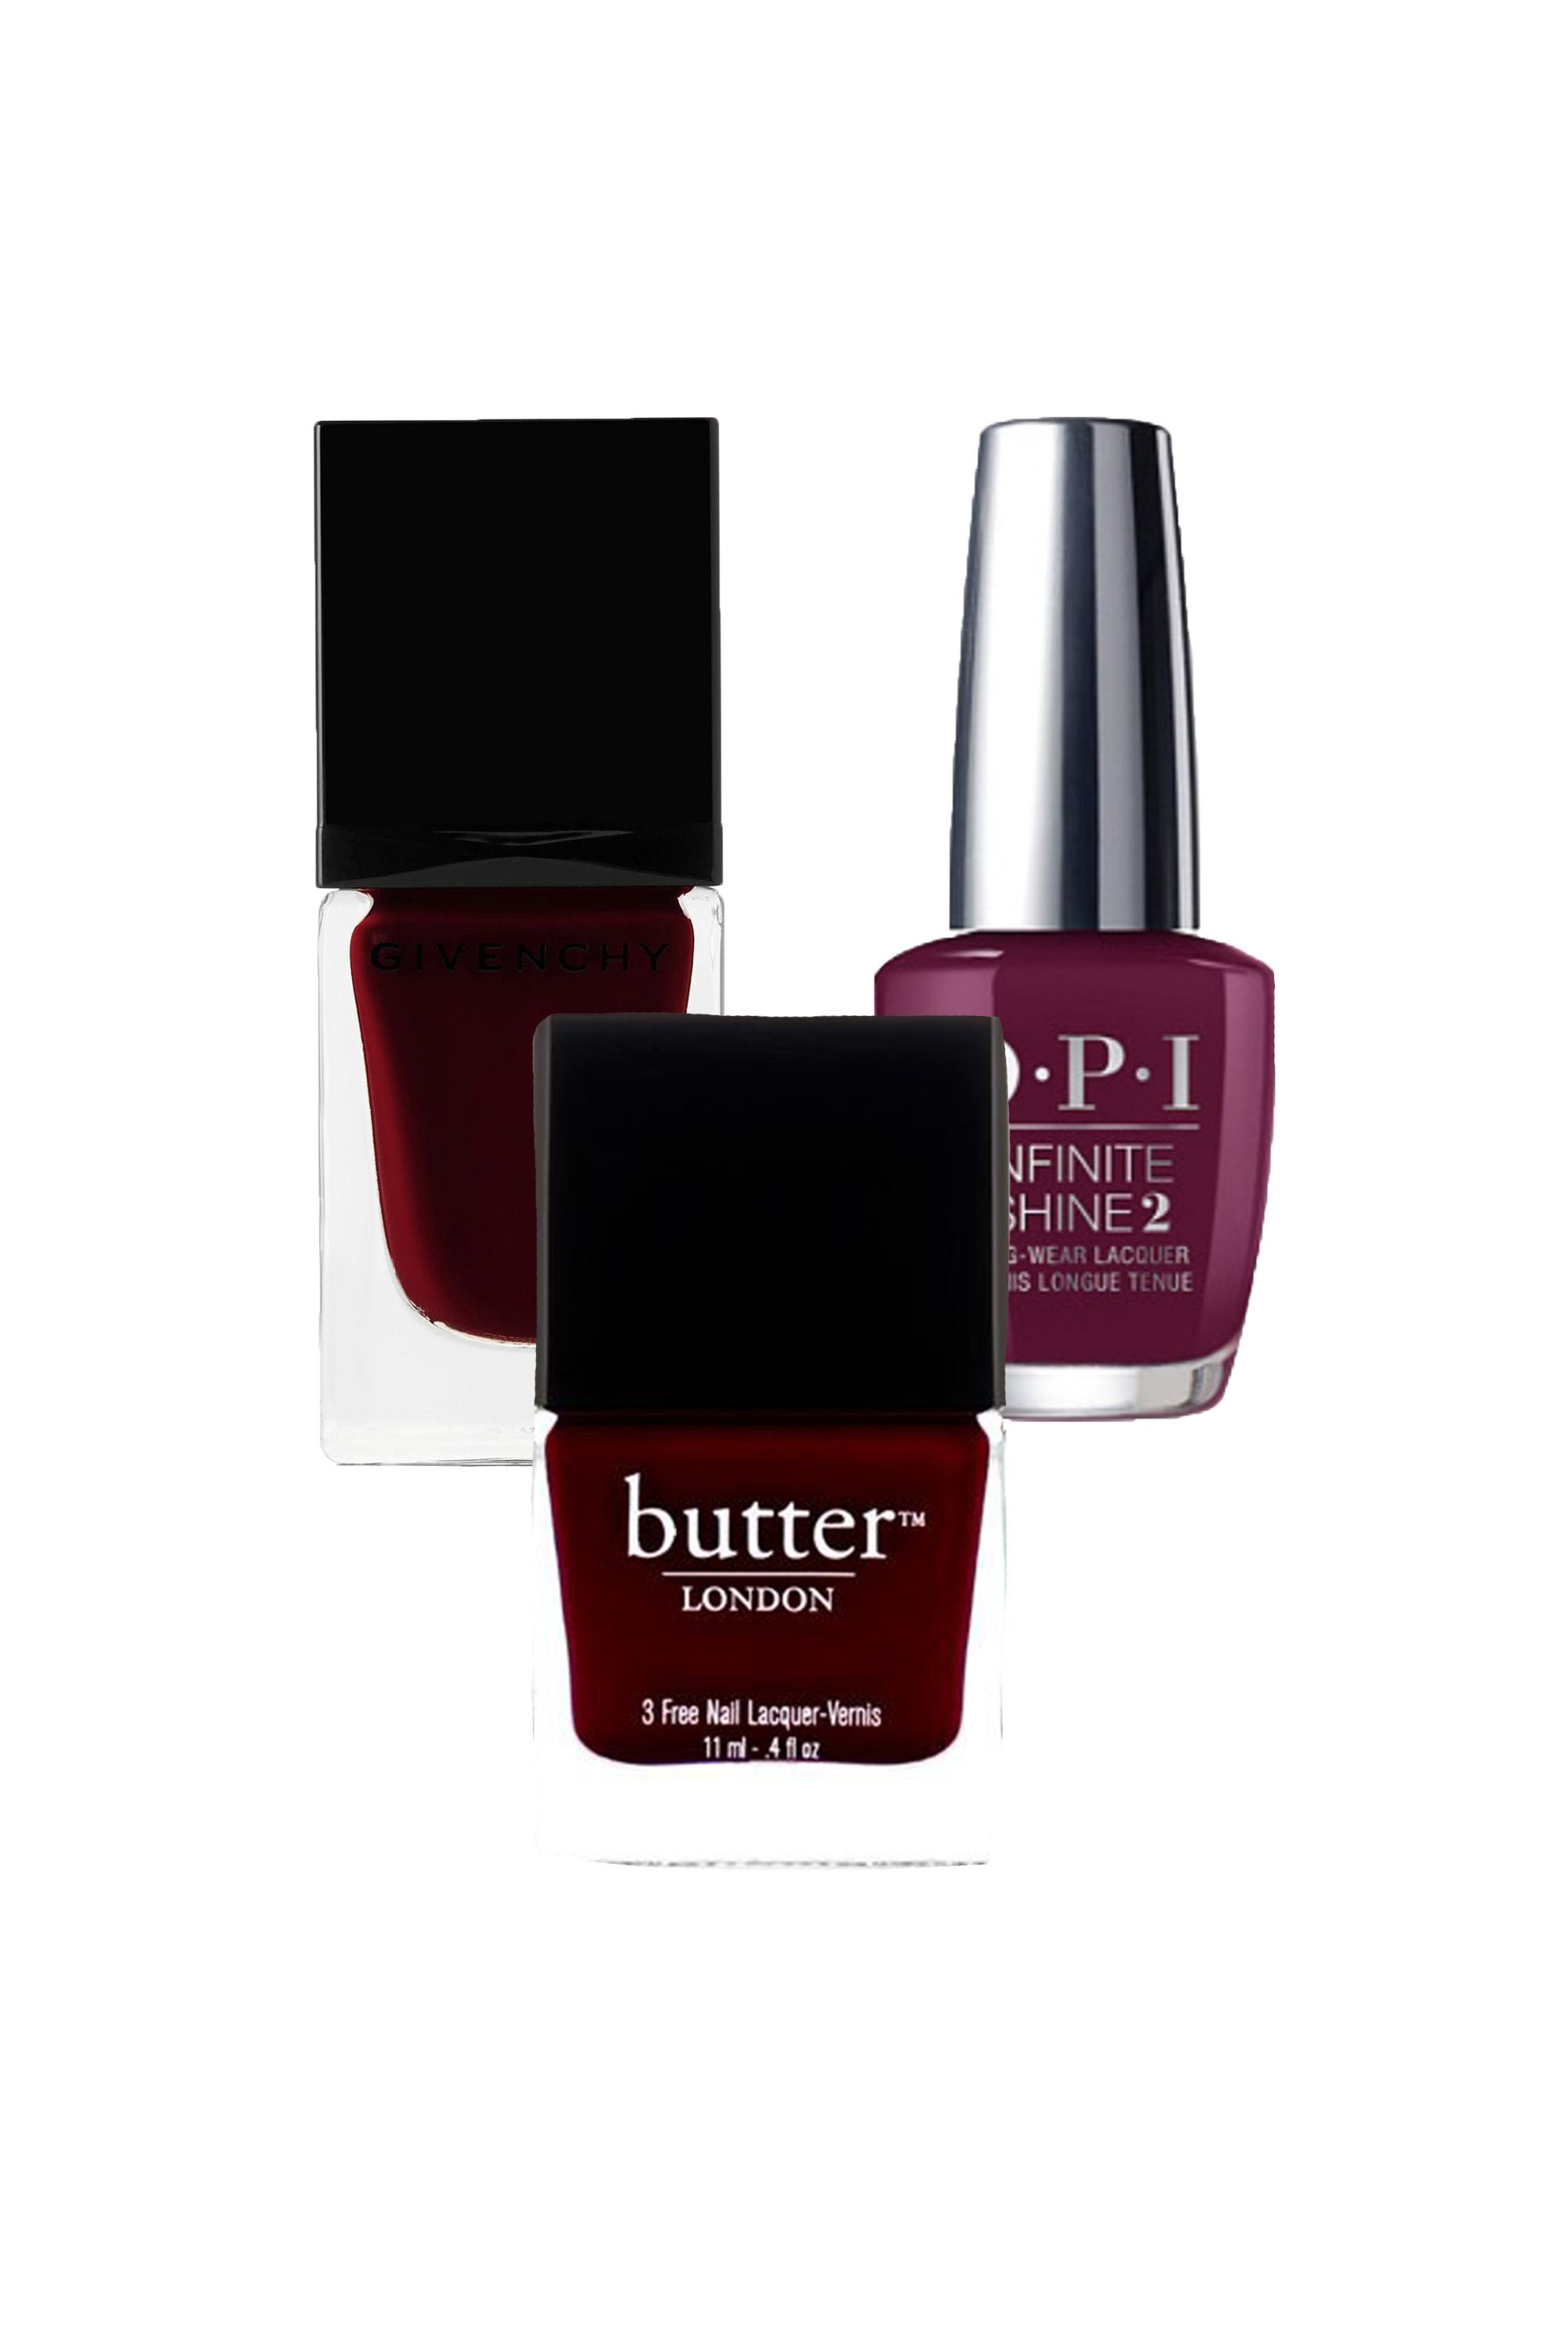 15 Trendy Winter Nail Polish Colors 2018 Winter Nail Polishes To Try